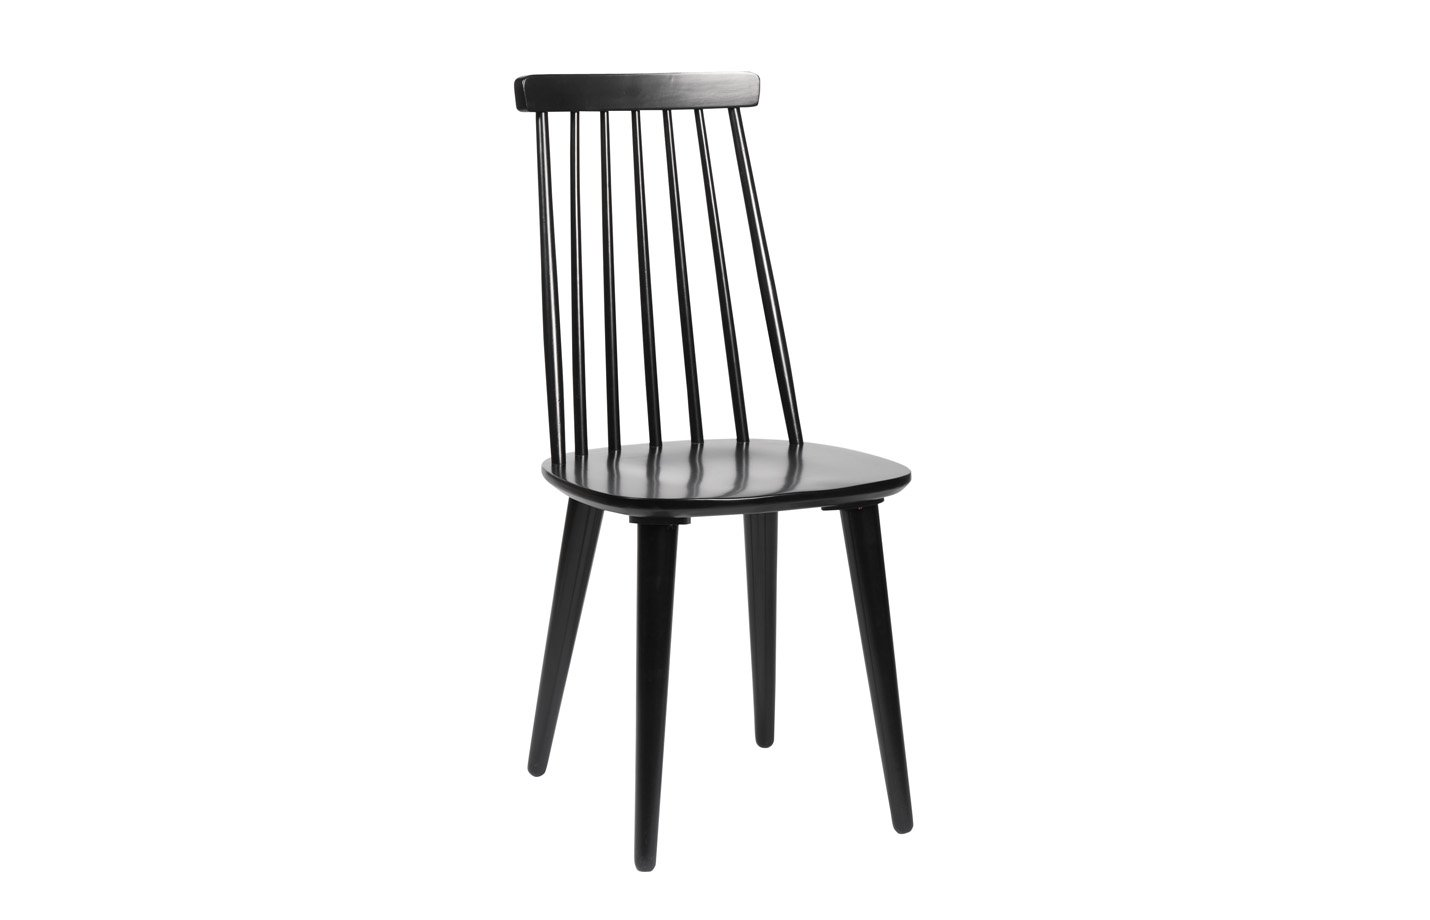 Lotta chair – Black